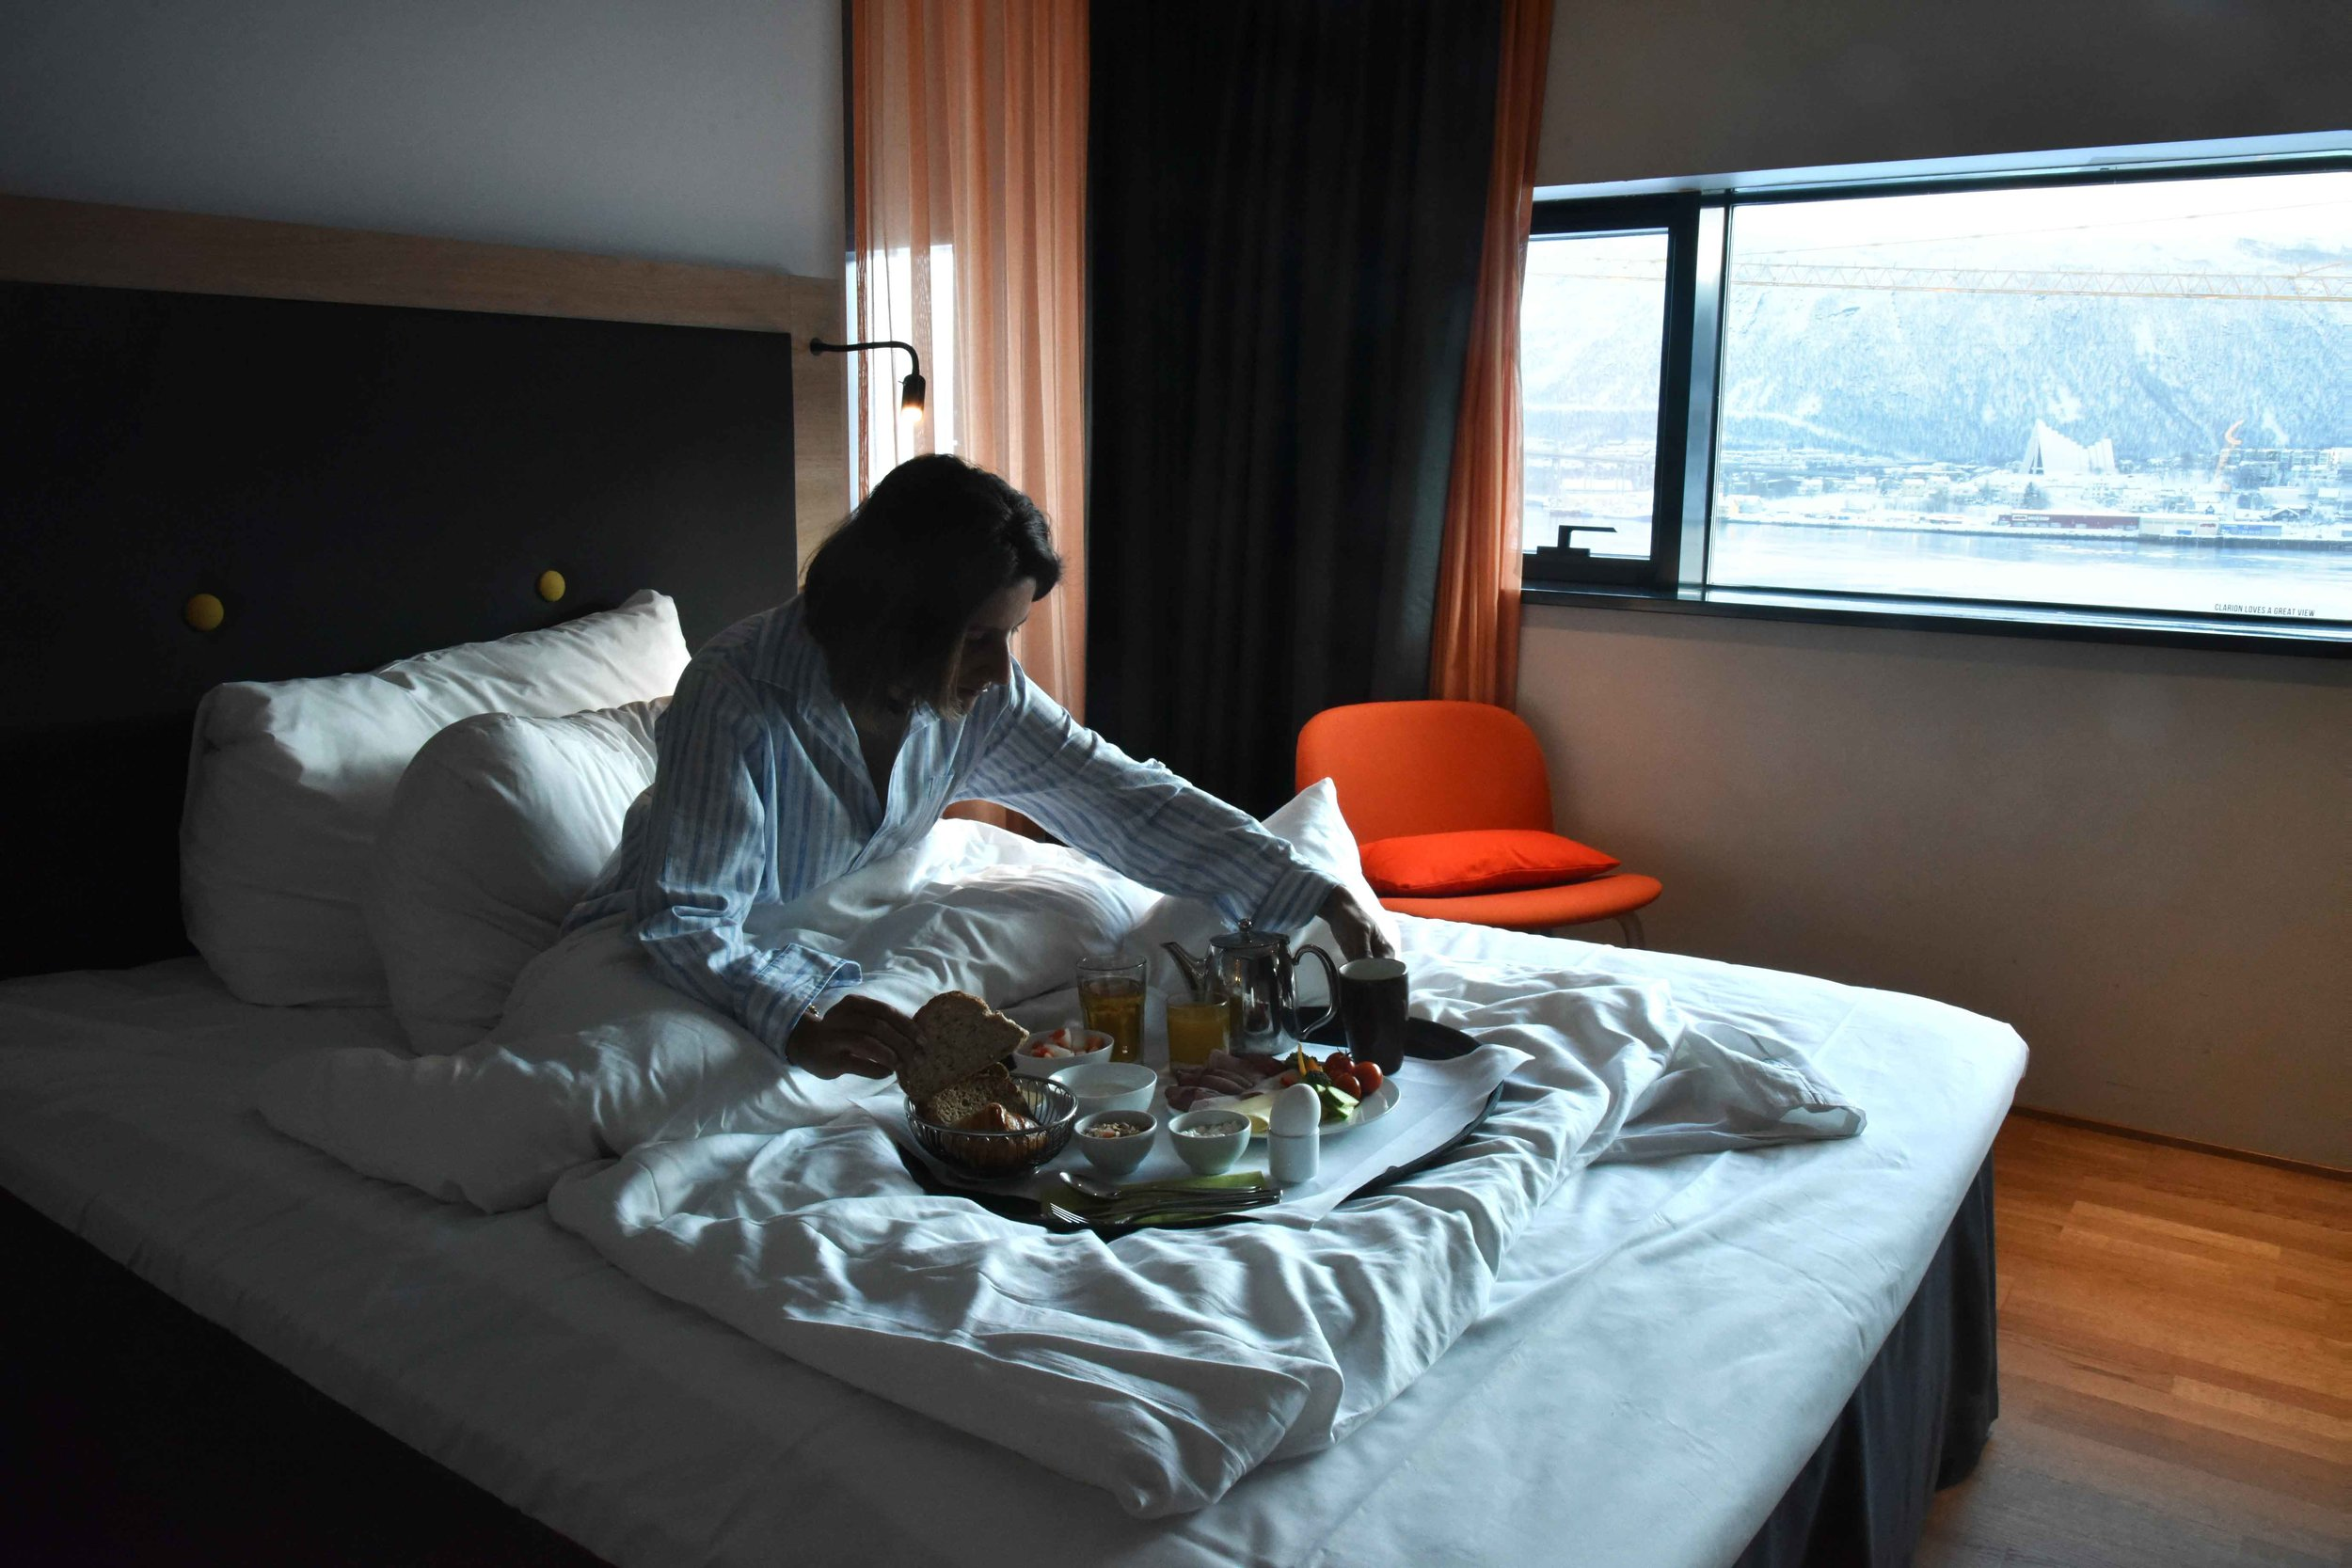 Breakfast in bed,Clarion Hotel the Edge, Tromso, Norway.Image©thingstodot.com